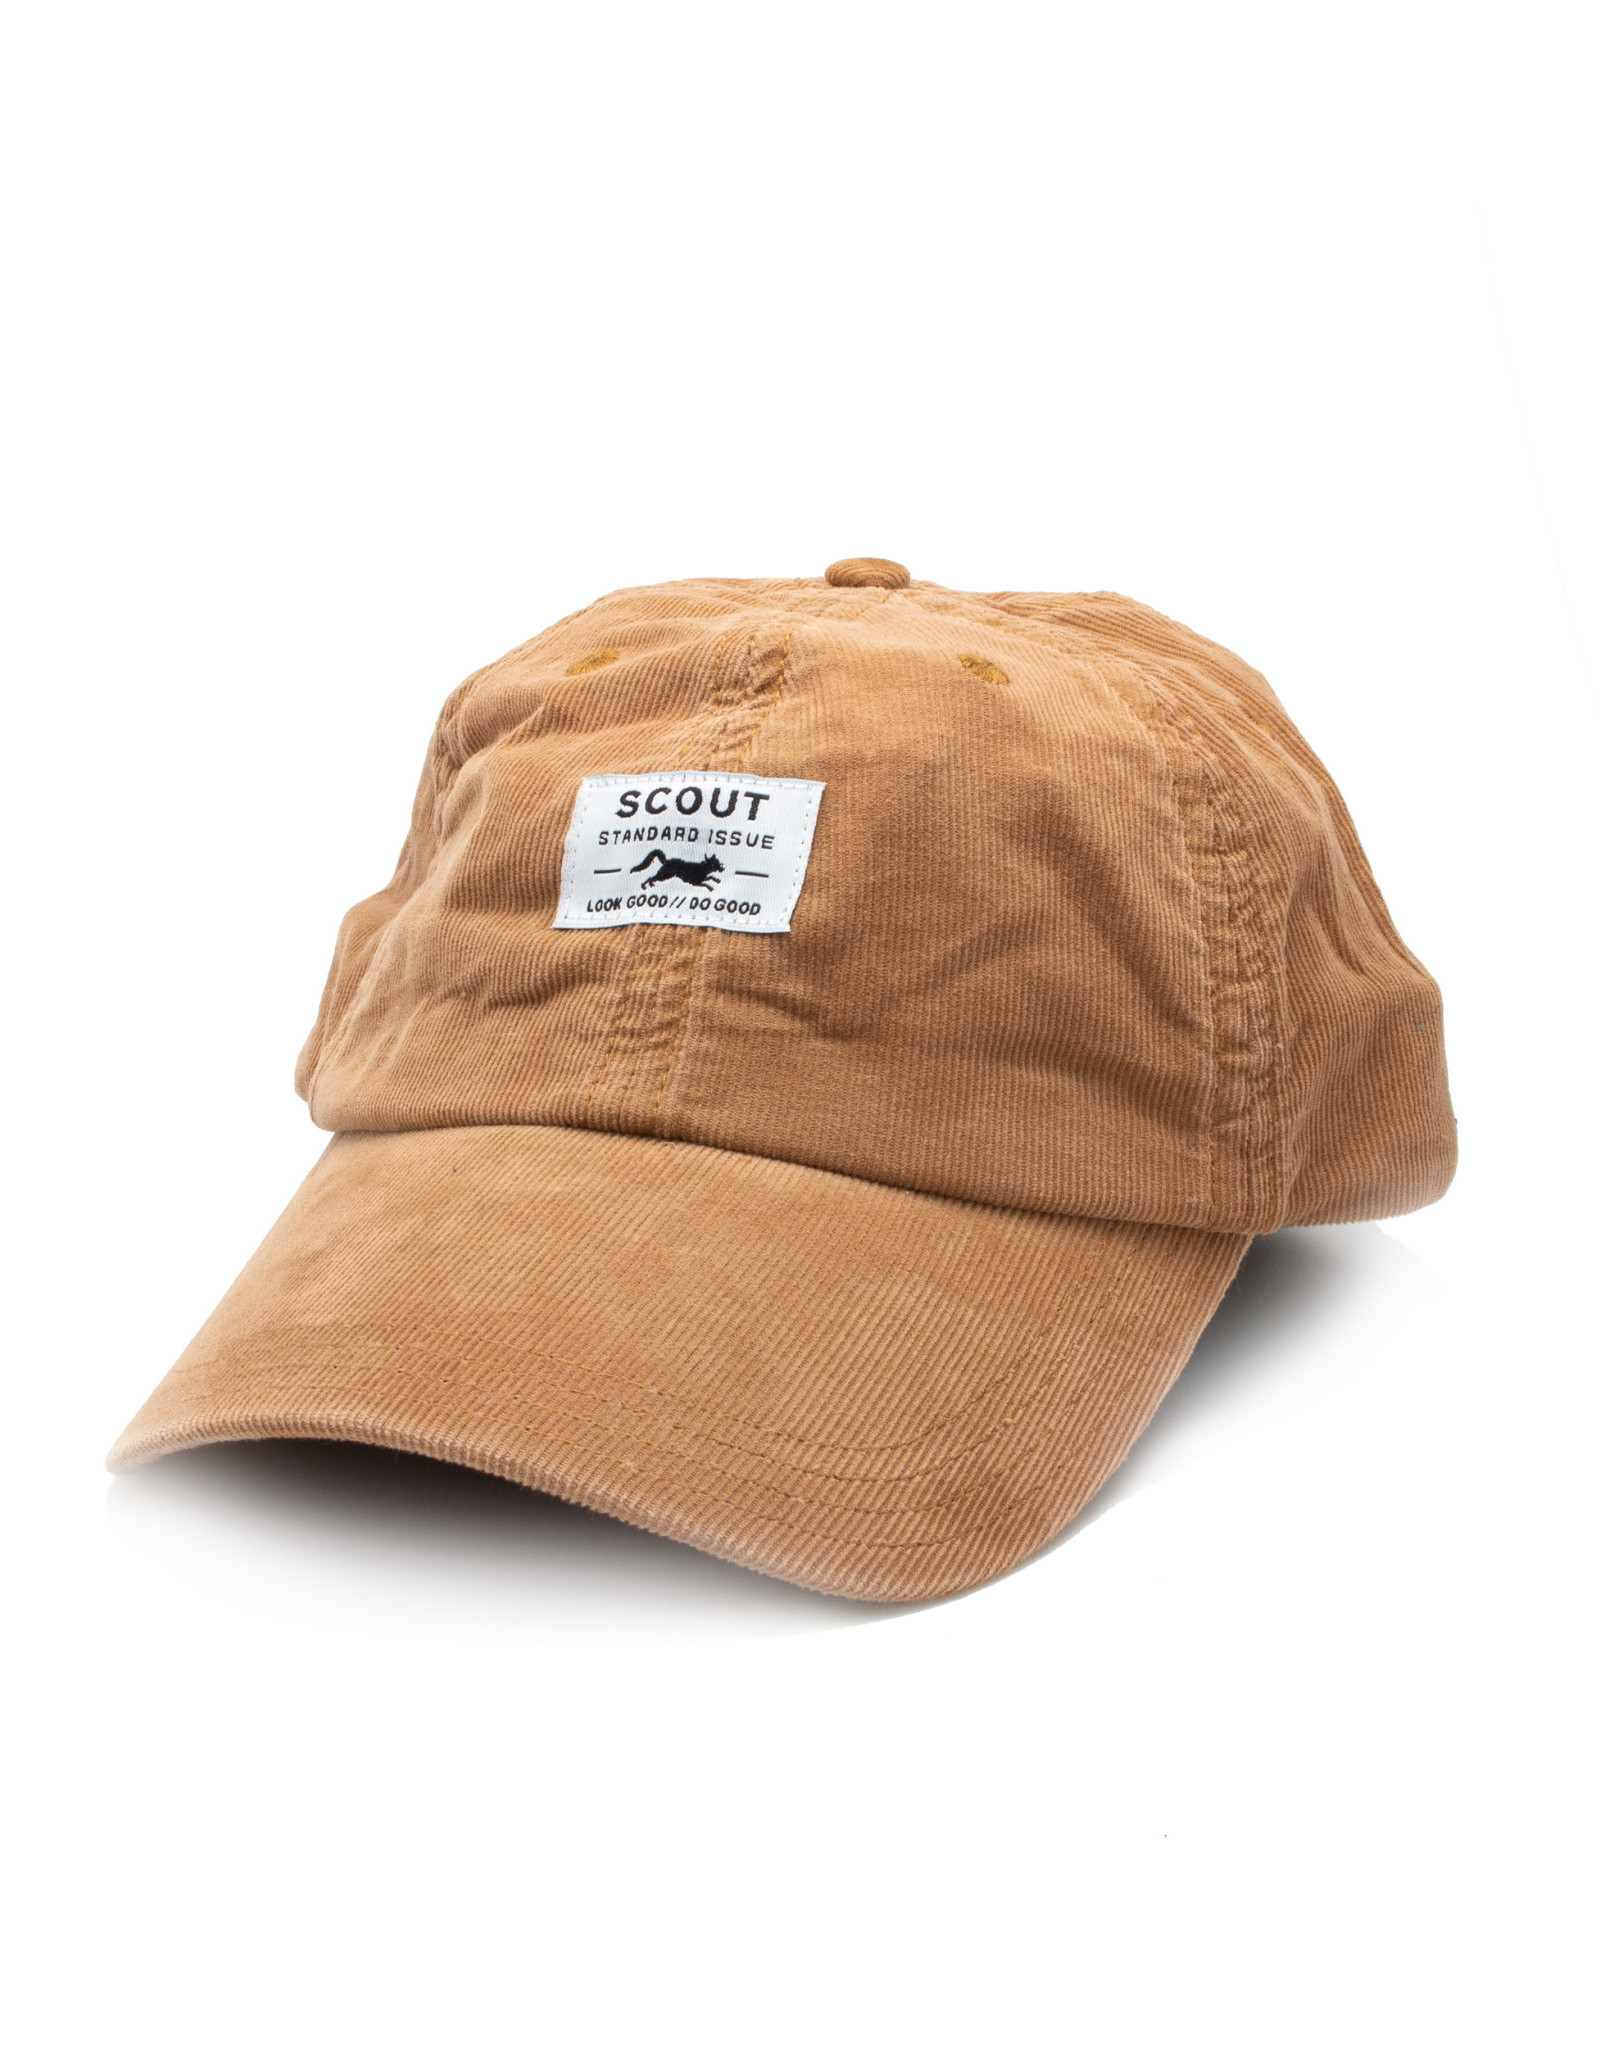 Scout Standard Issue Dad Hat - Tan Cord